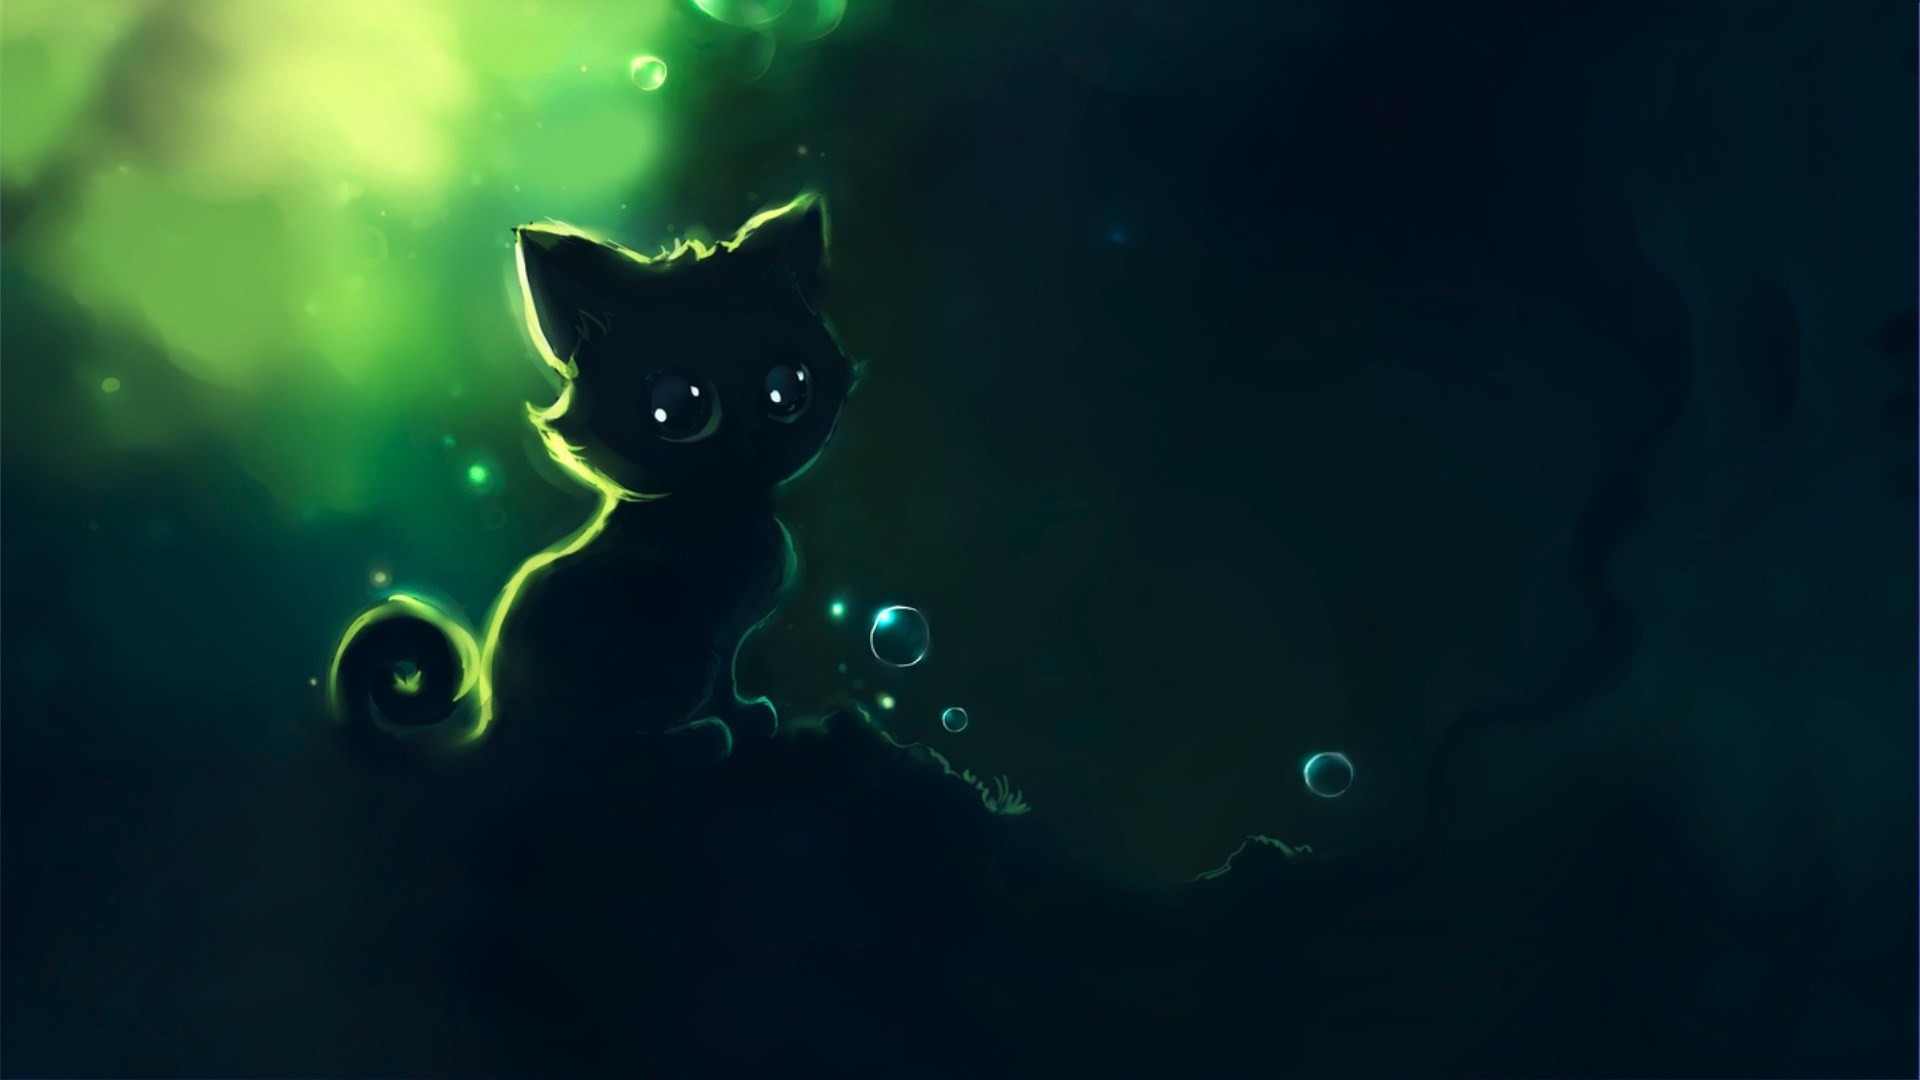 Night Cat Artwork